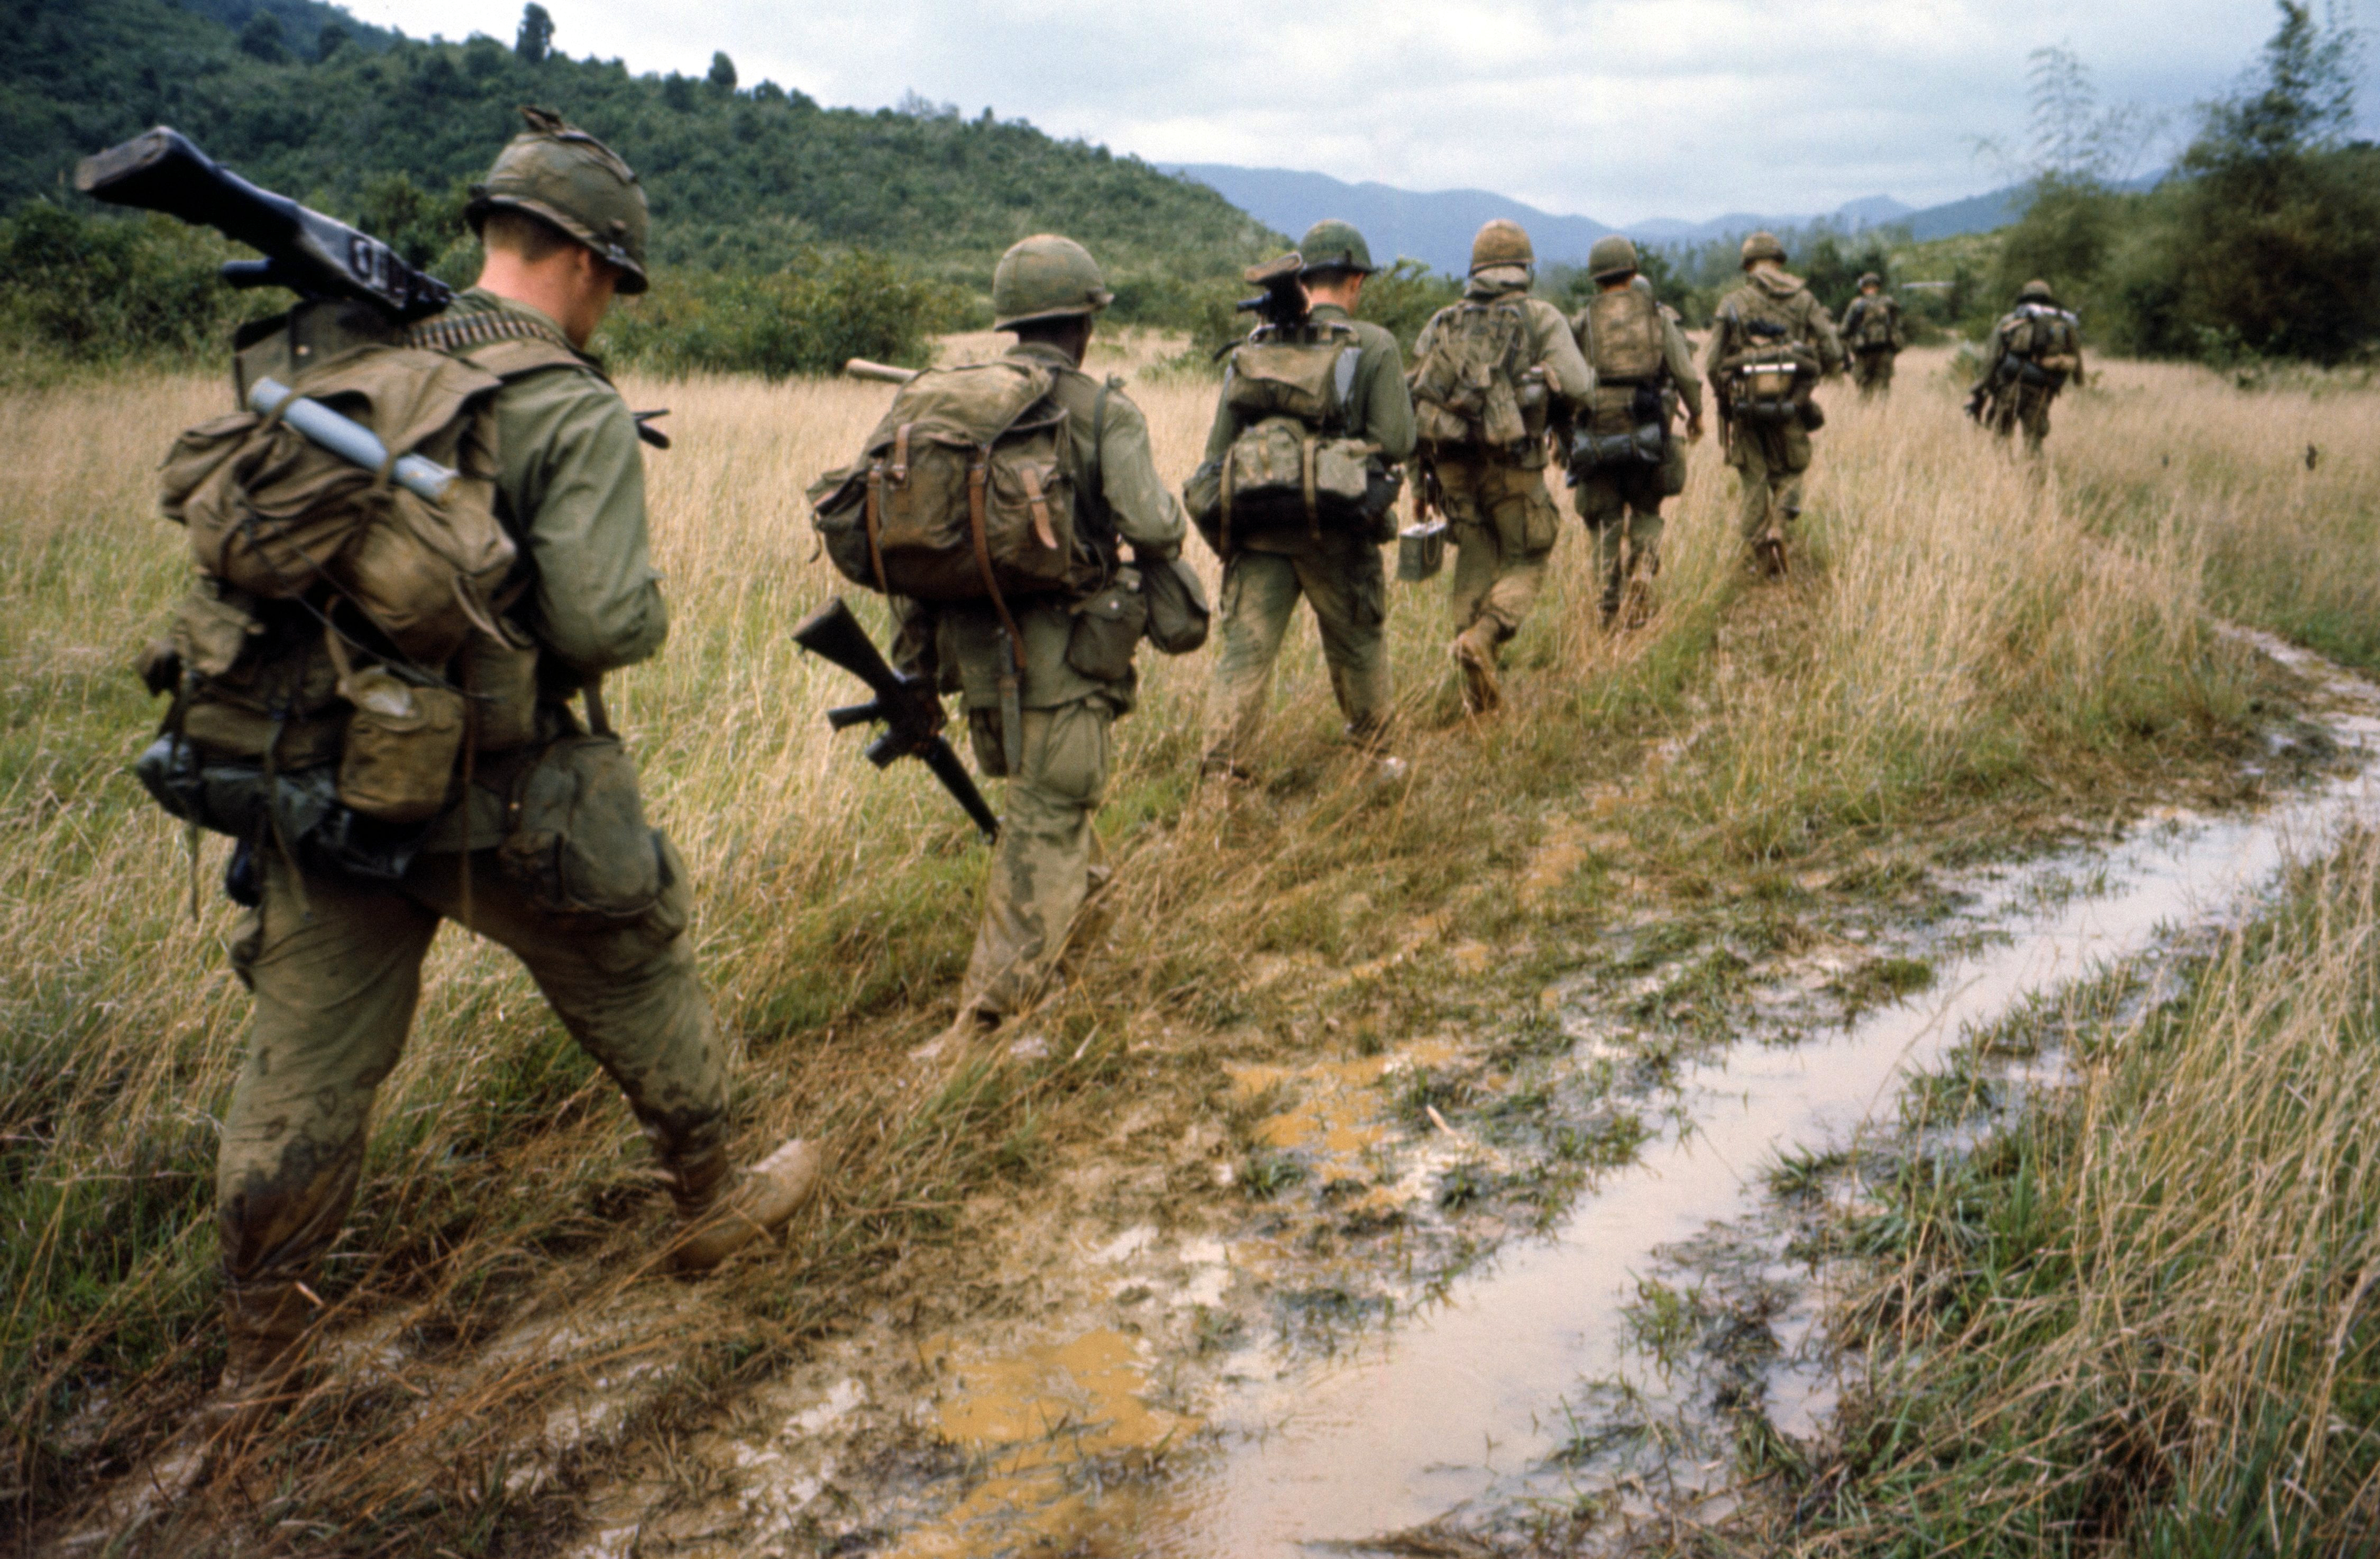 the vietnam war was a defining Just remember that the vietnam war can be a very sticky, sensitive subject and defining the us role as a win or loss is too simplistic an explanation that characterizes the roles of many different people, from politicians to military grunts, without proper context.